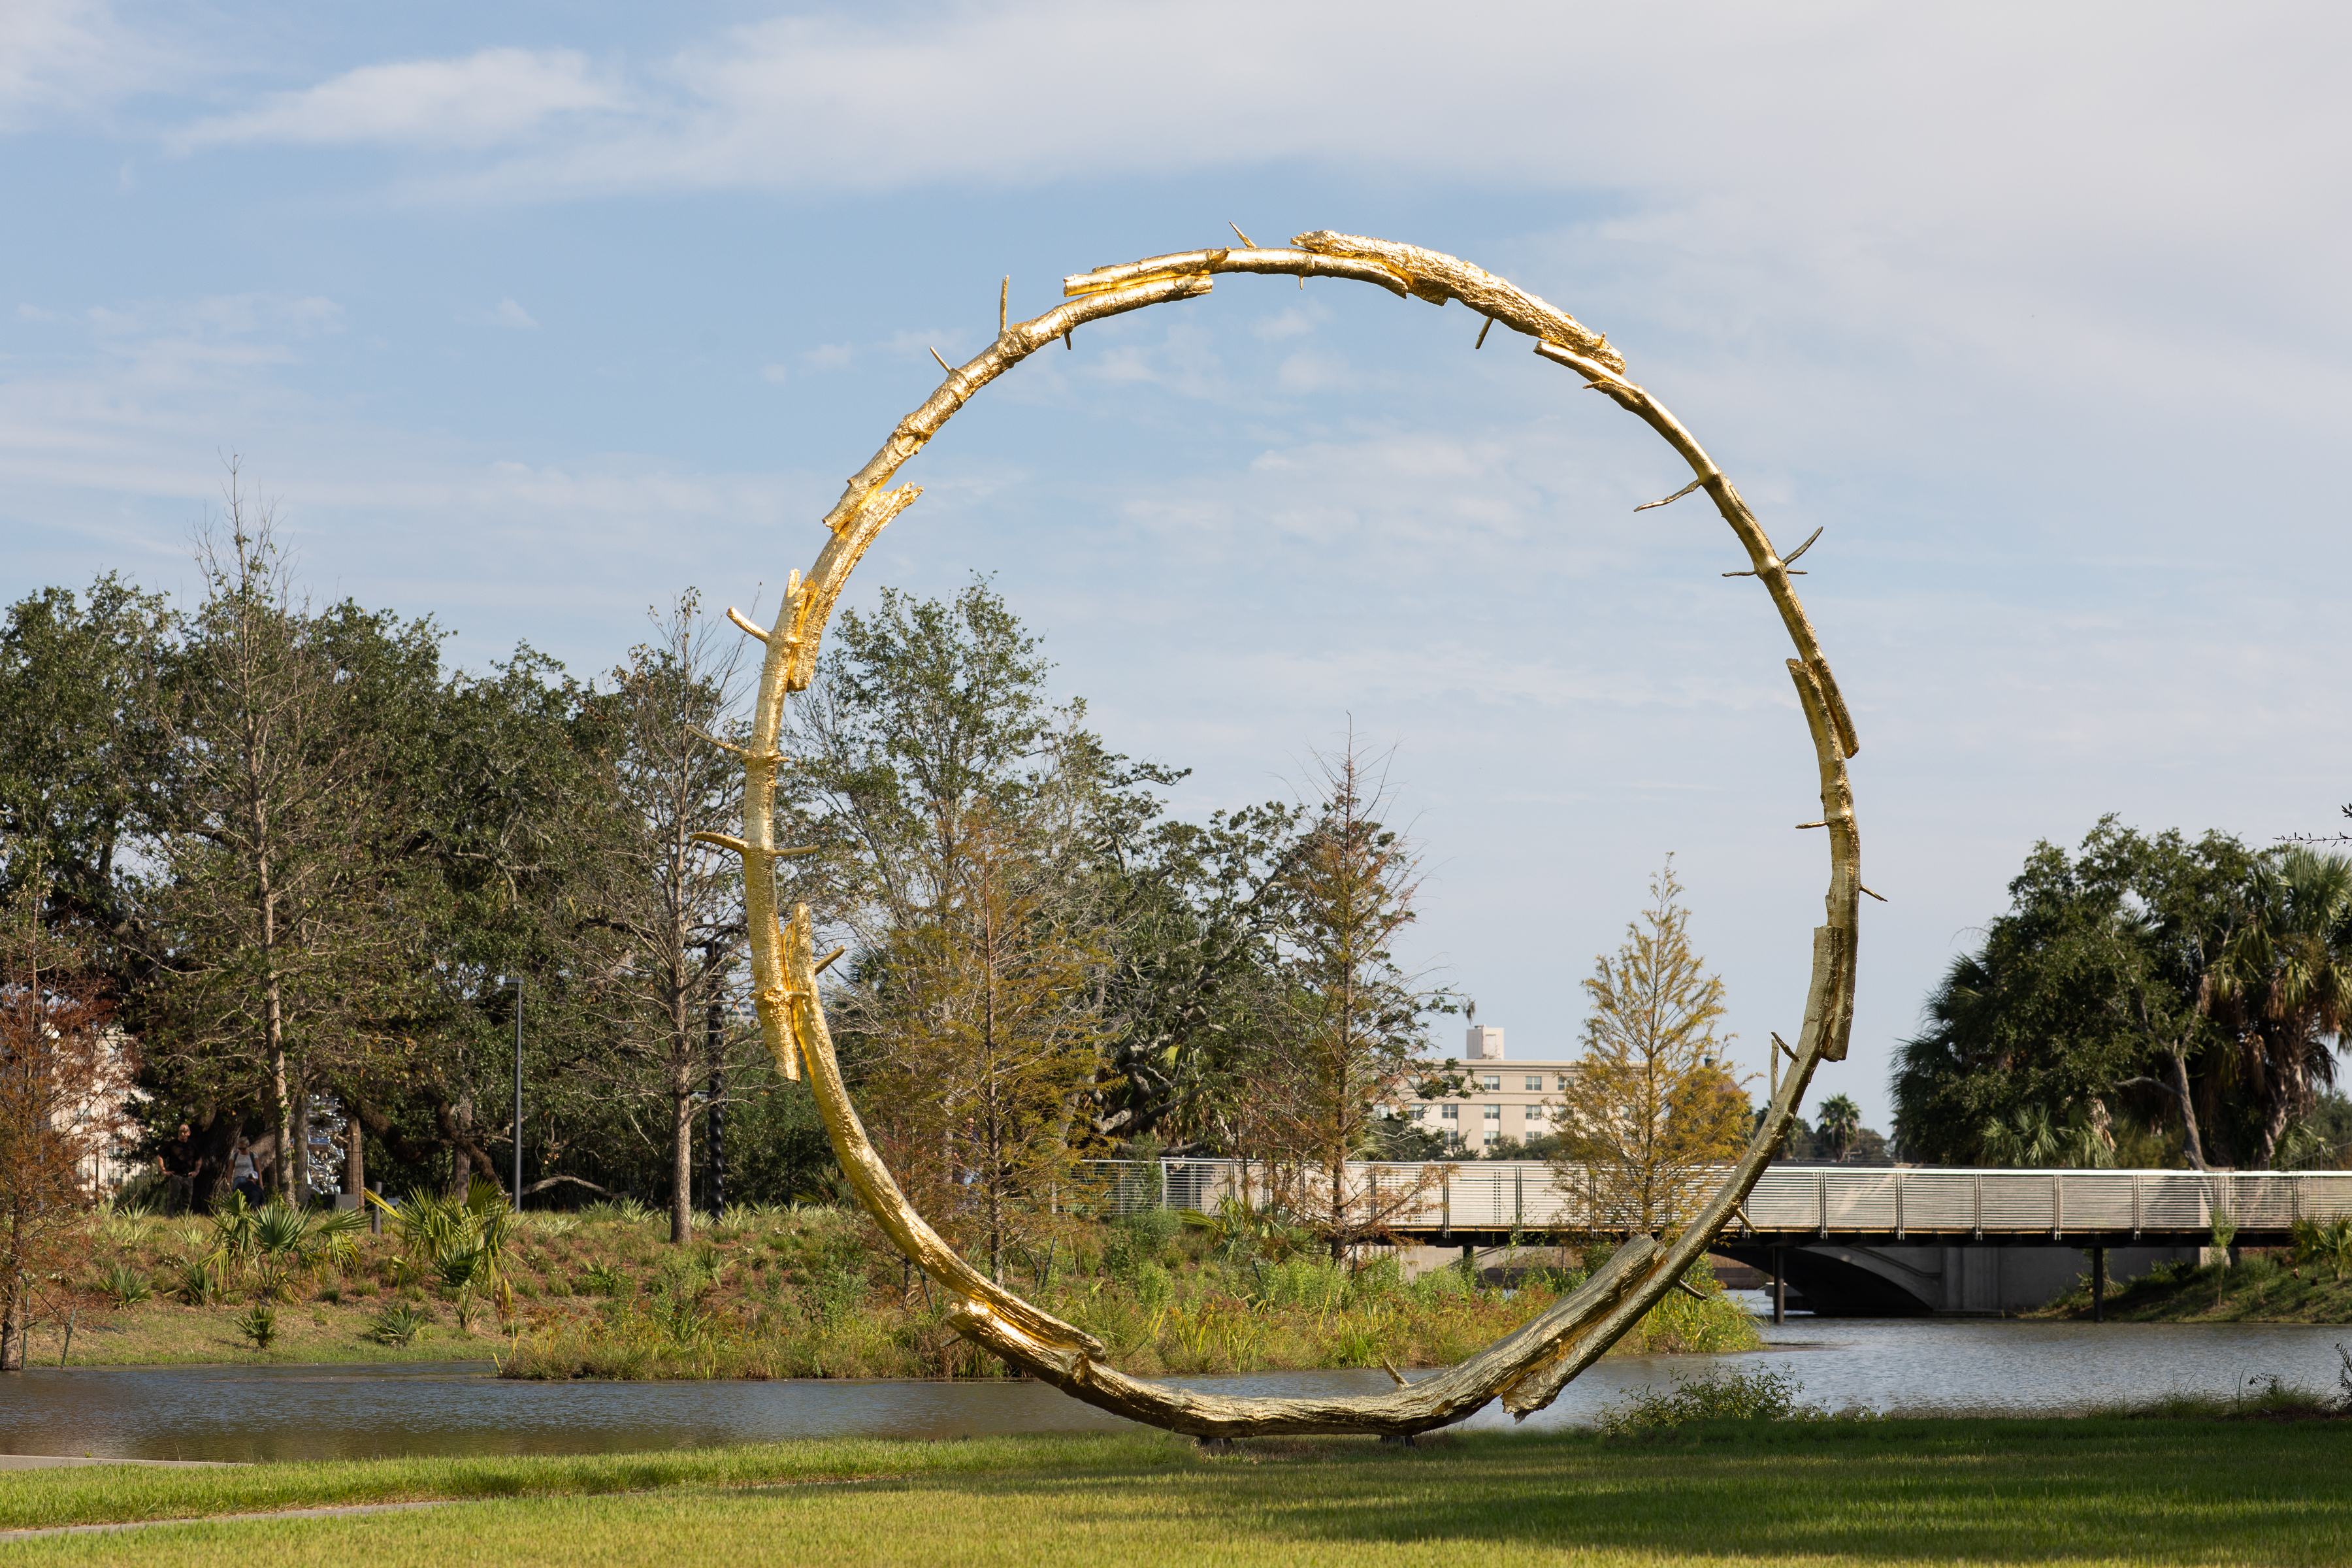 A large gold circular sculpture in a park with trees and lagoons